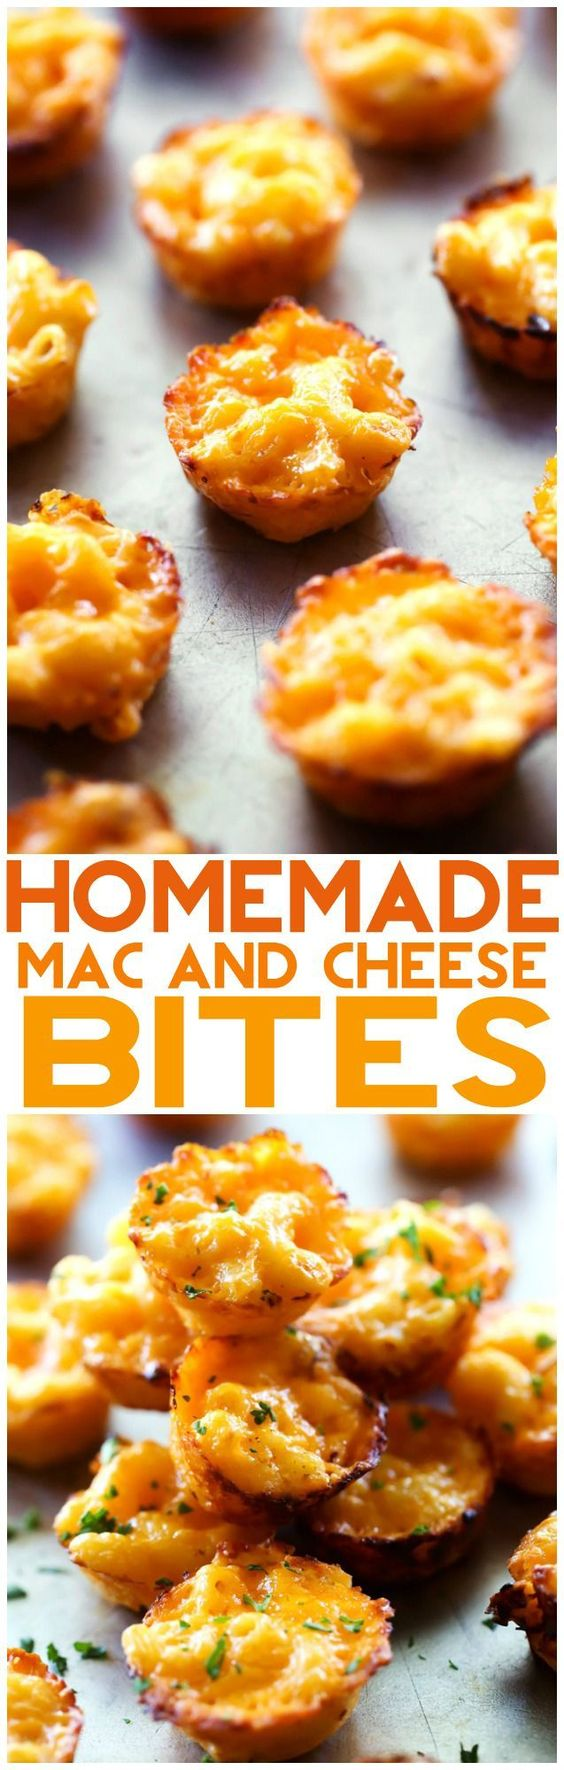 Homemade Mac and Cheese Bites... These are so simple and the perfect finger food ideal for serving kids and as an appetizer! These are DELICIOUS! via Chef in Training #horsdoeuvres #appetizers #fingerfoods #tapas #partyfood #christmaspartyfood #newyearsevepartyfood #newyearseve #tailgating #superbowl #easyappetizers